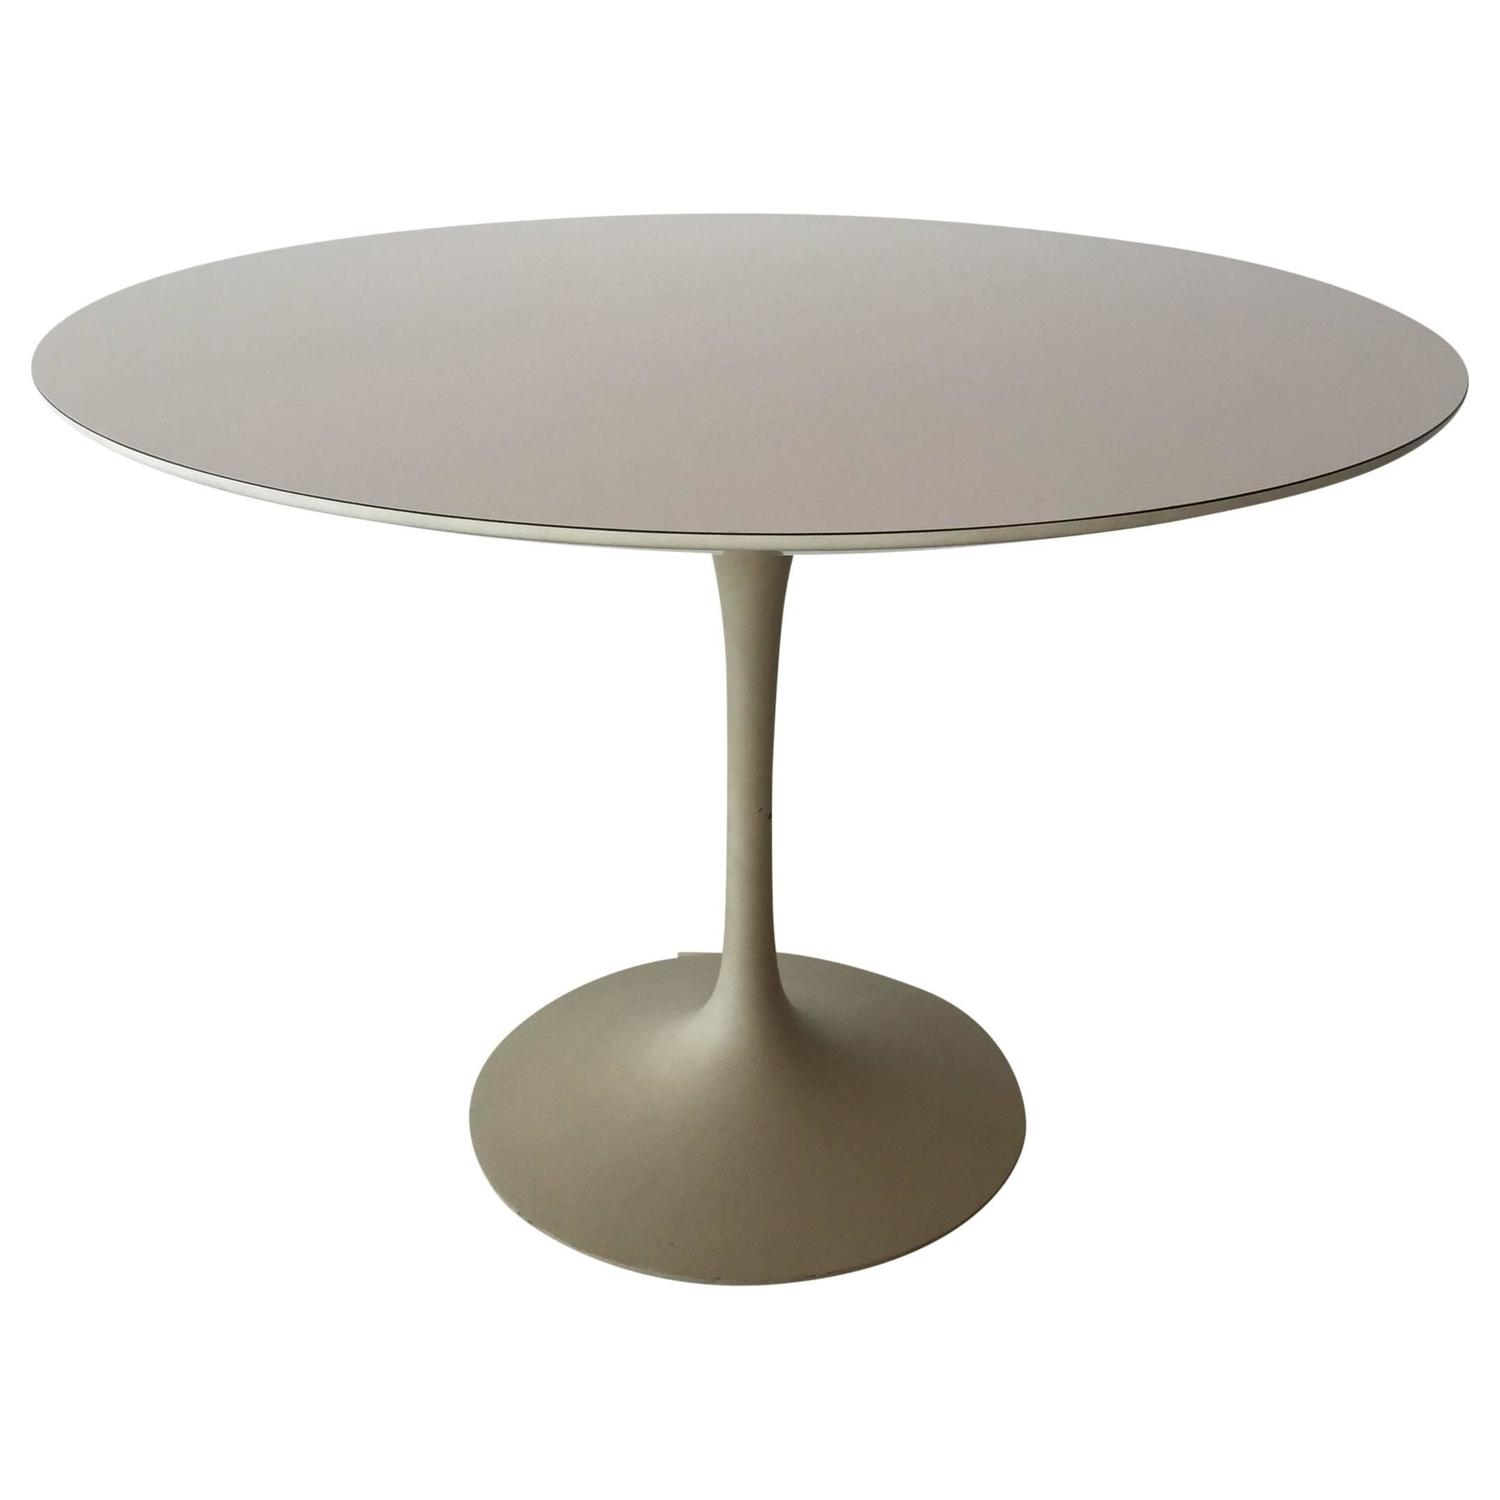 Eero Saarinen for Knoll Associates Tulip Dining Table Circa